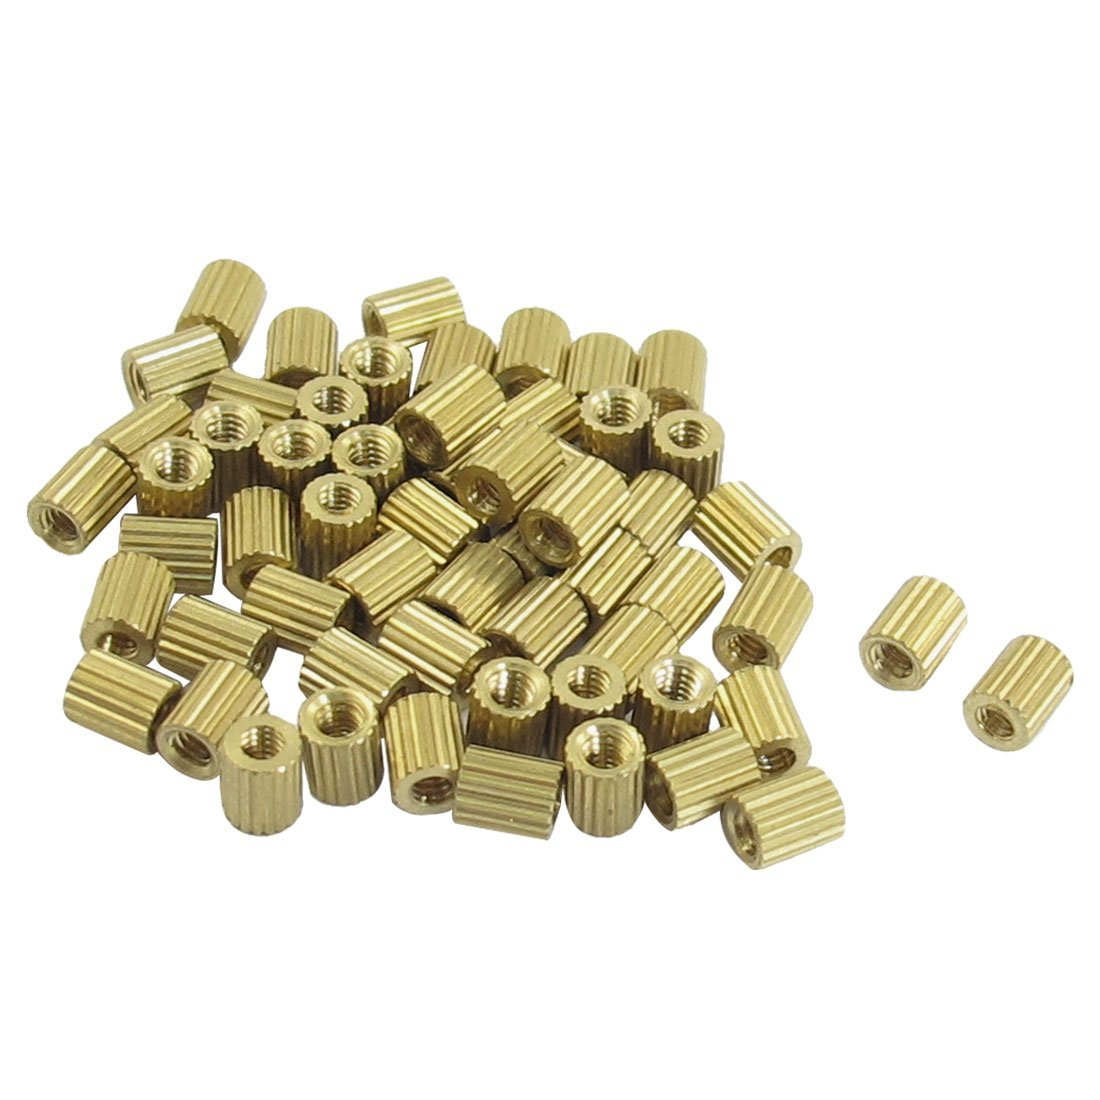 M2 Cylinder Shaped Female Threaded Brass Standoff Spacer 50Pcs 2Type 50 pcs female threaded pillars brass